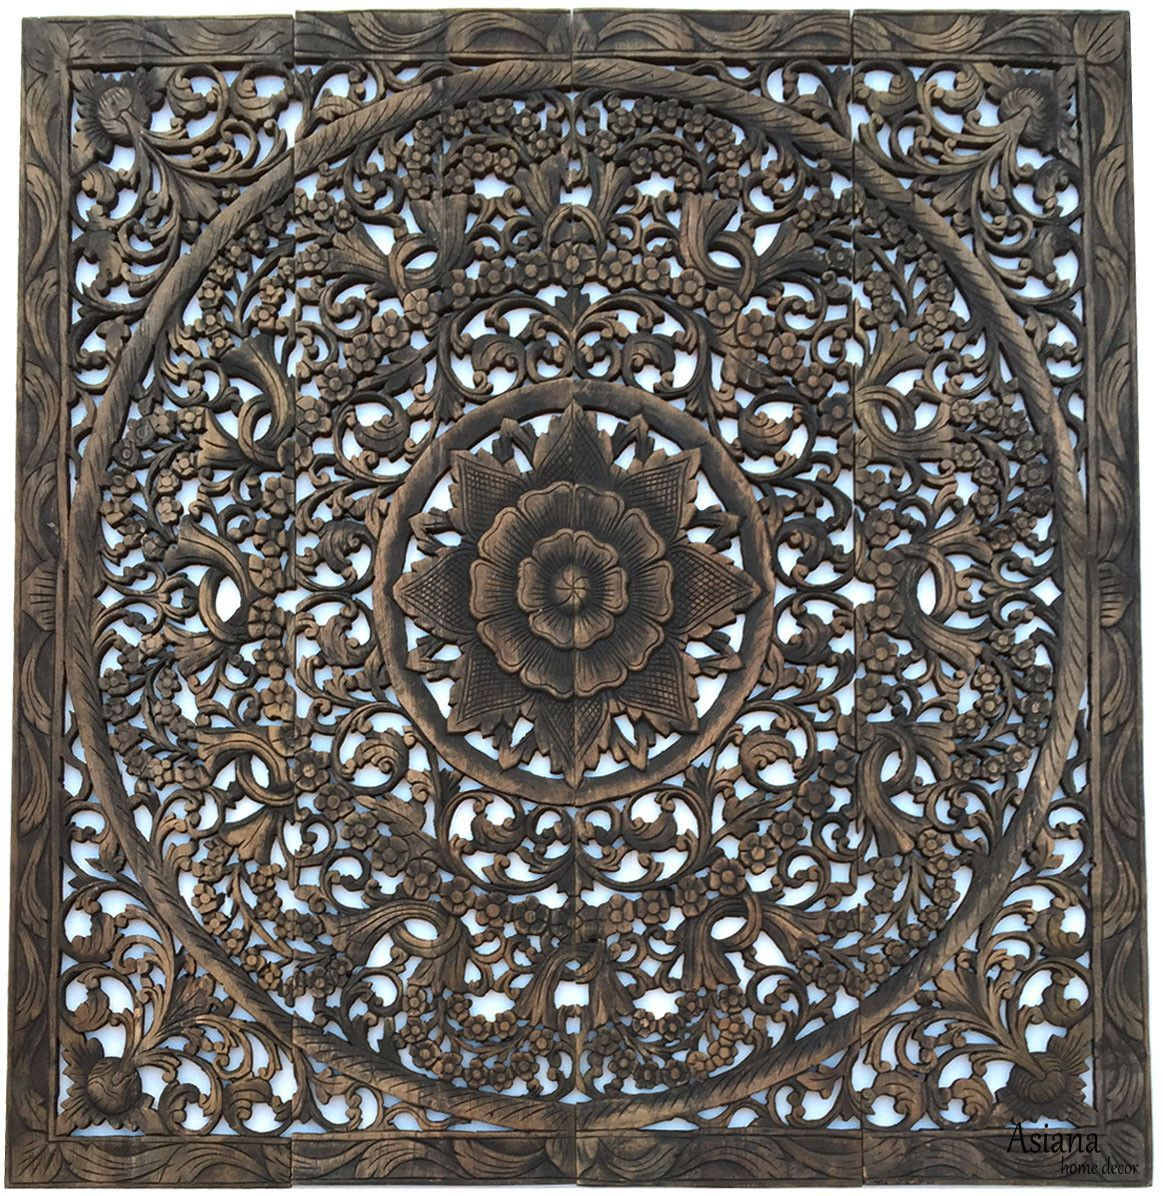 Elegant wood carved wall plaque wood carved floral wall art elegant wood carved wall plaque wood carved floral wall art asian home decor wall art panels bali home decor 48 color options available amipublicfo Images